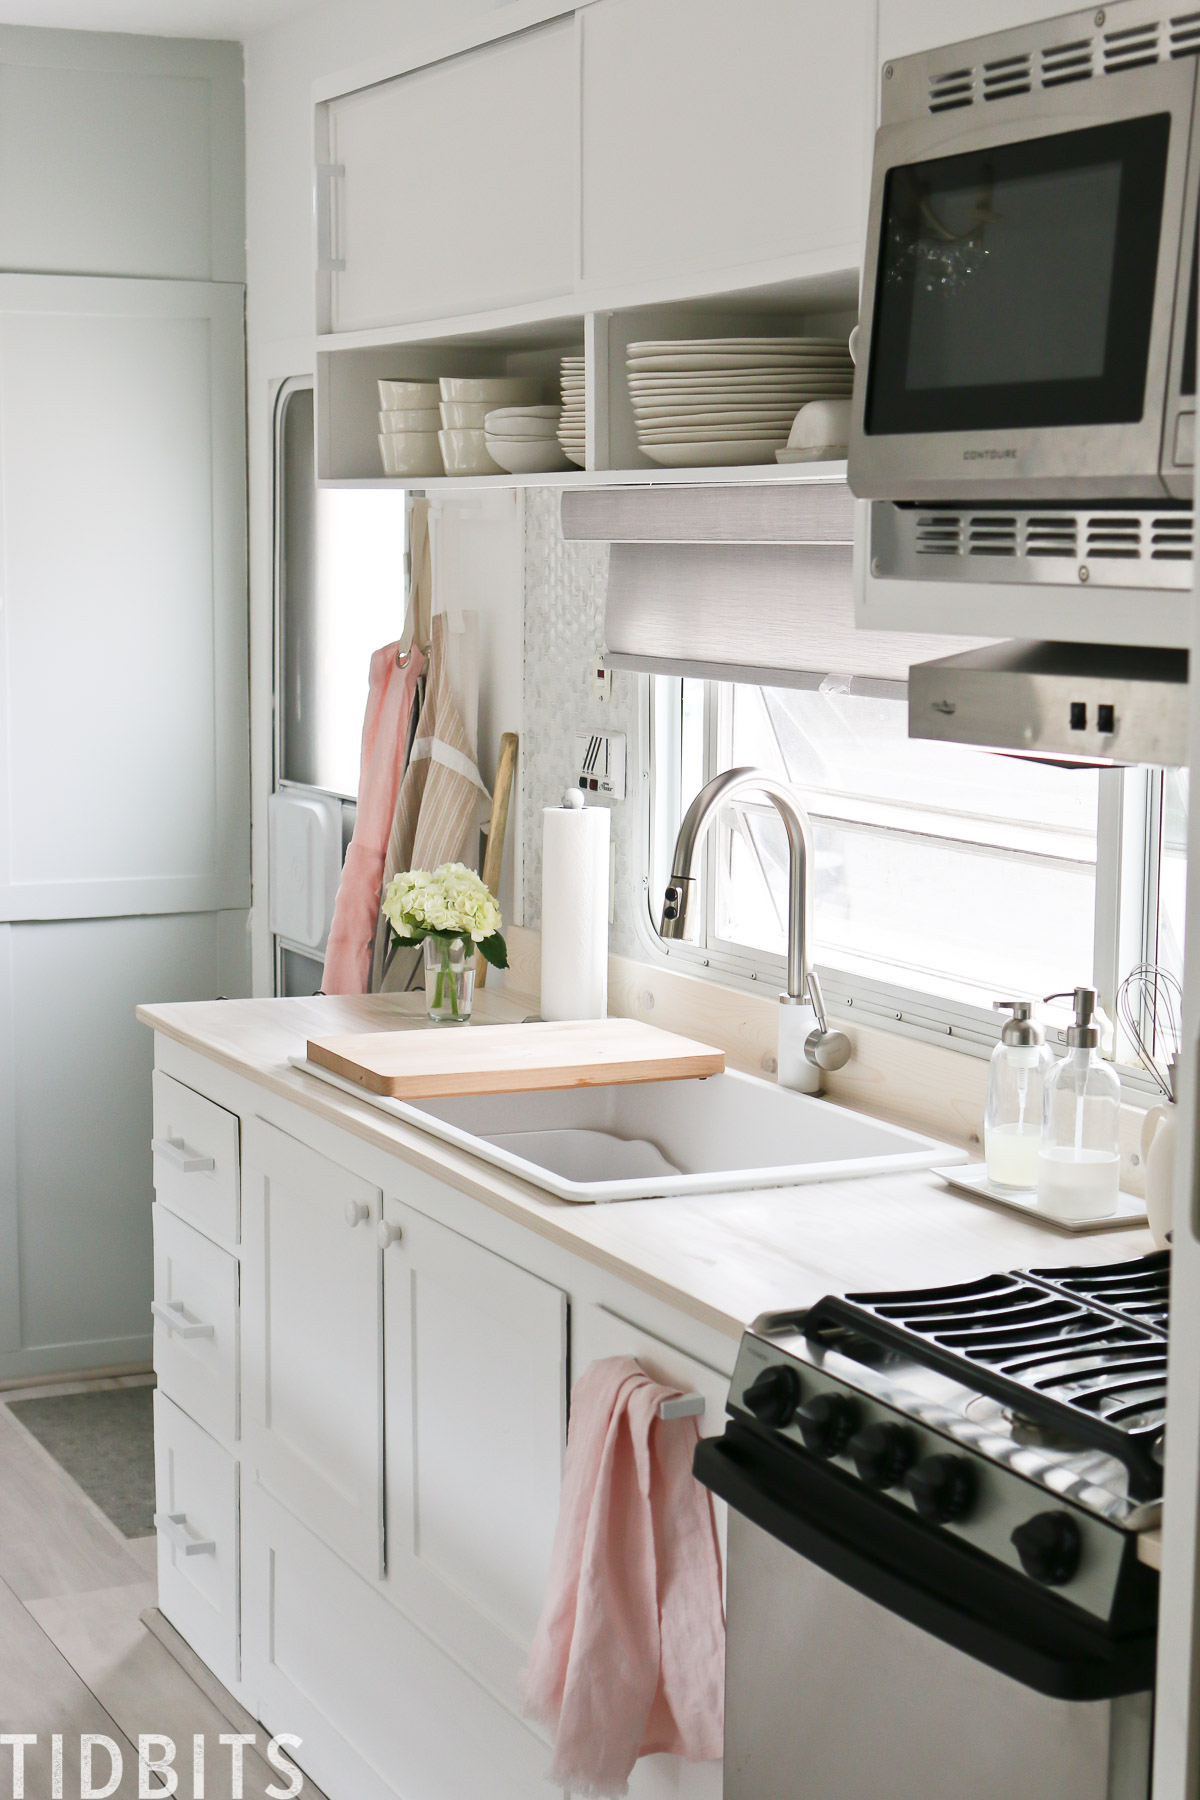 Rv Renovation Kitchen Details Tidbits